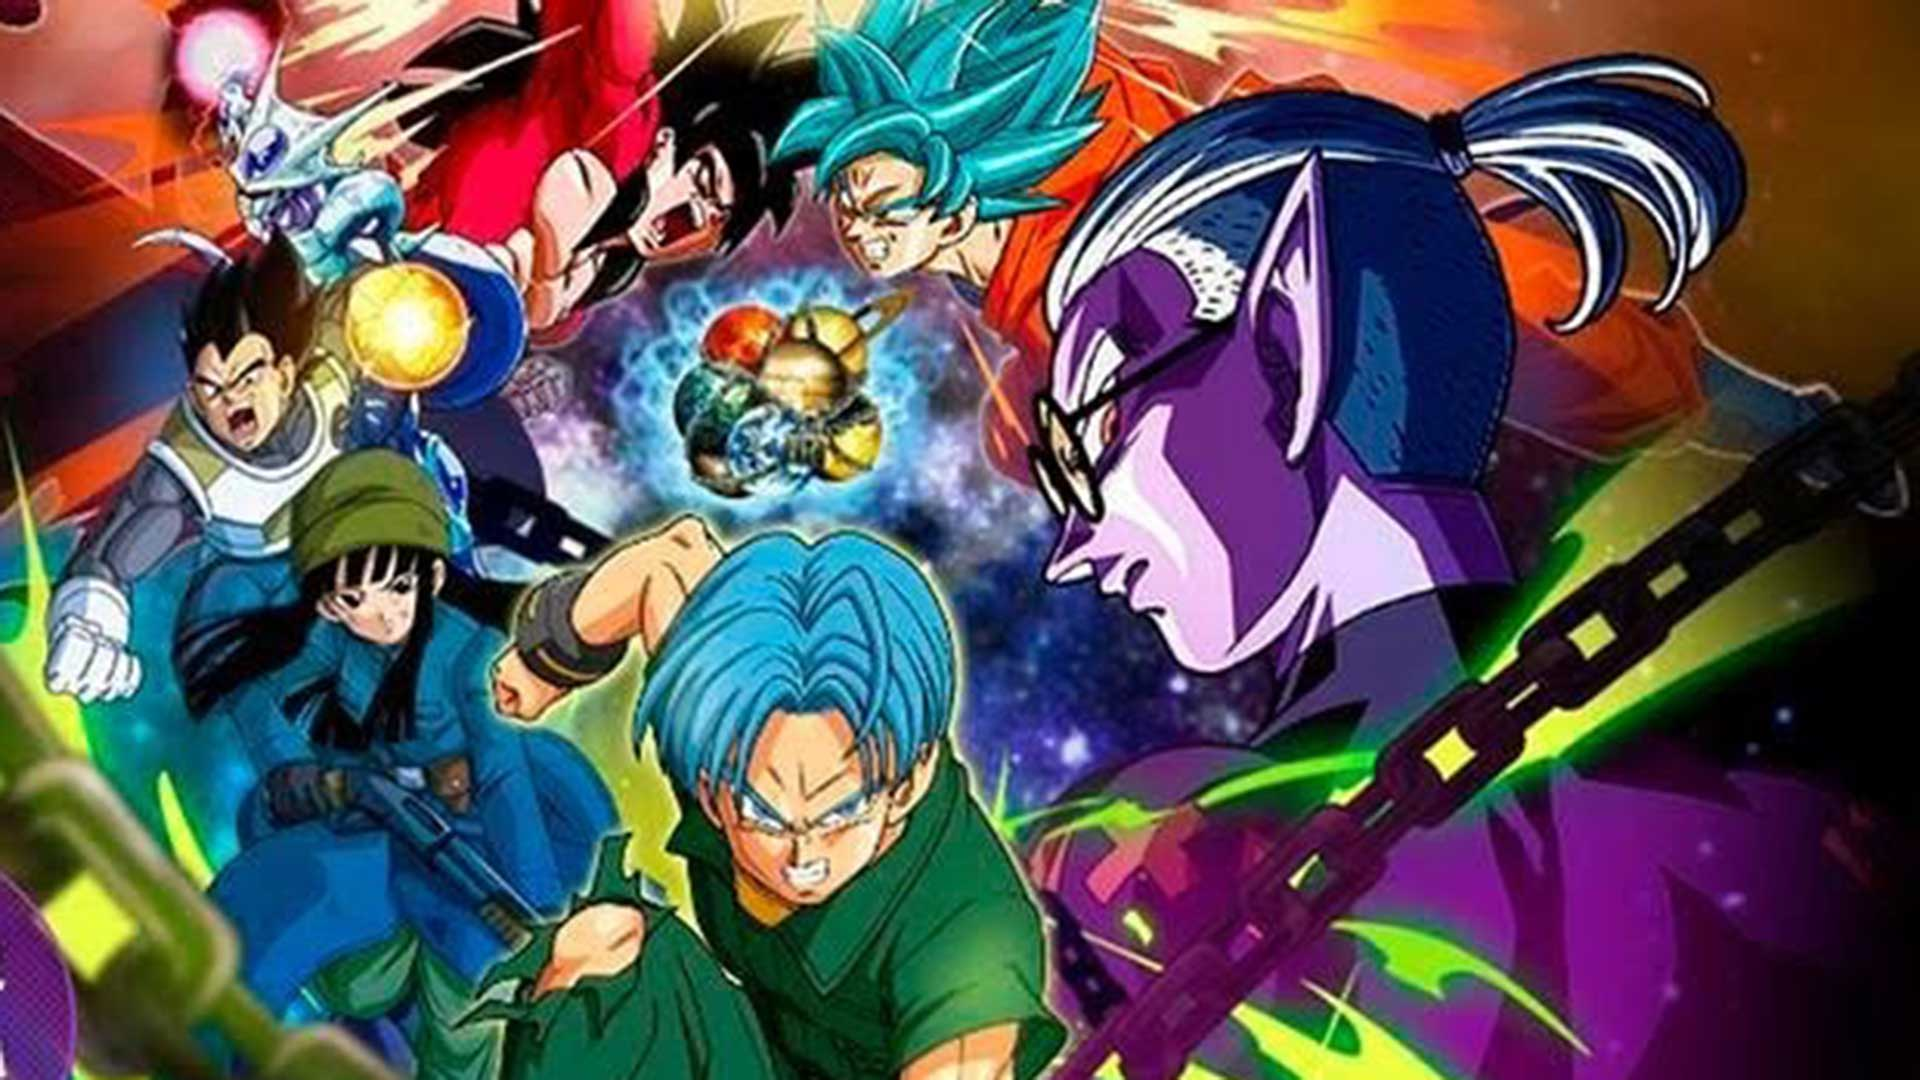 Todo lo que debes saber sobre super dragon ball heroes la - Imagenes de dragon ball super descargar ...